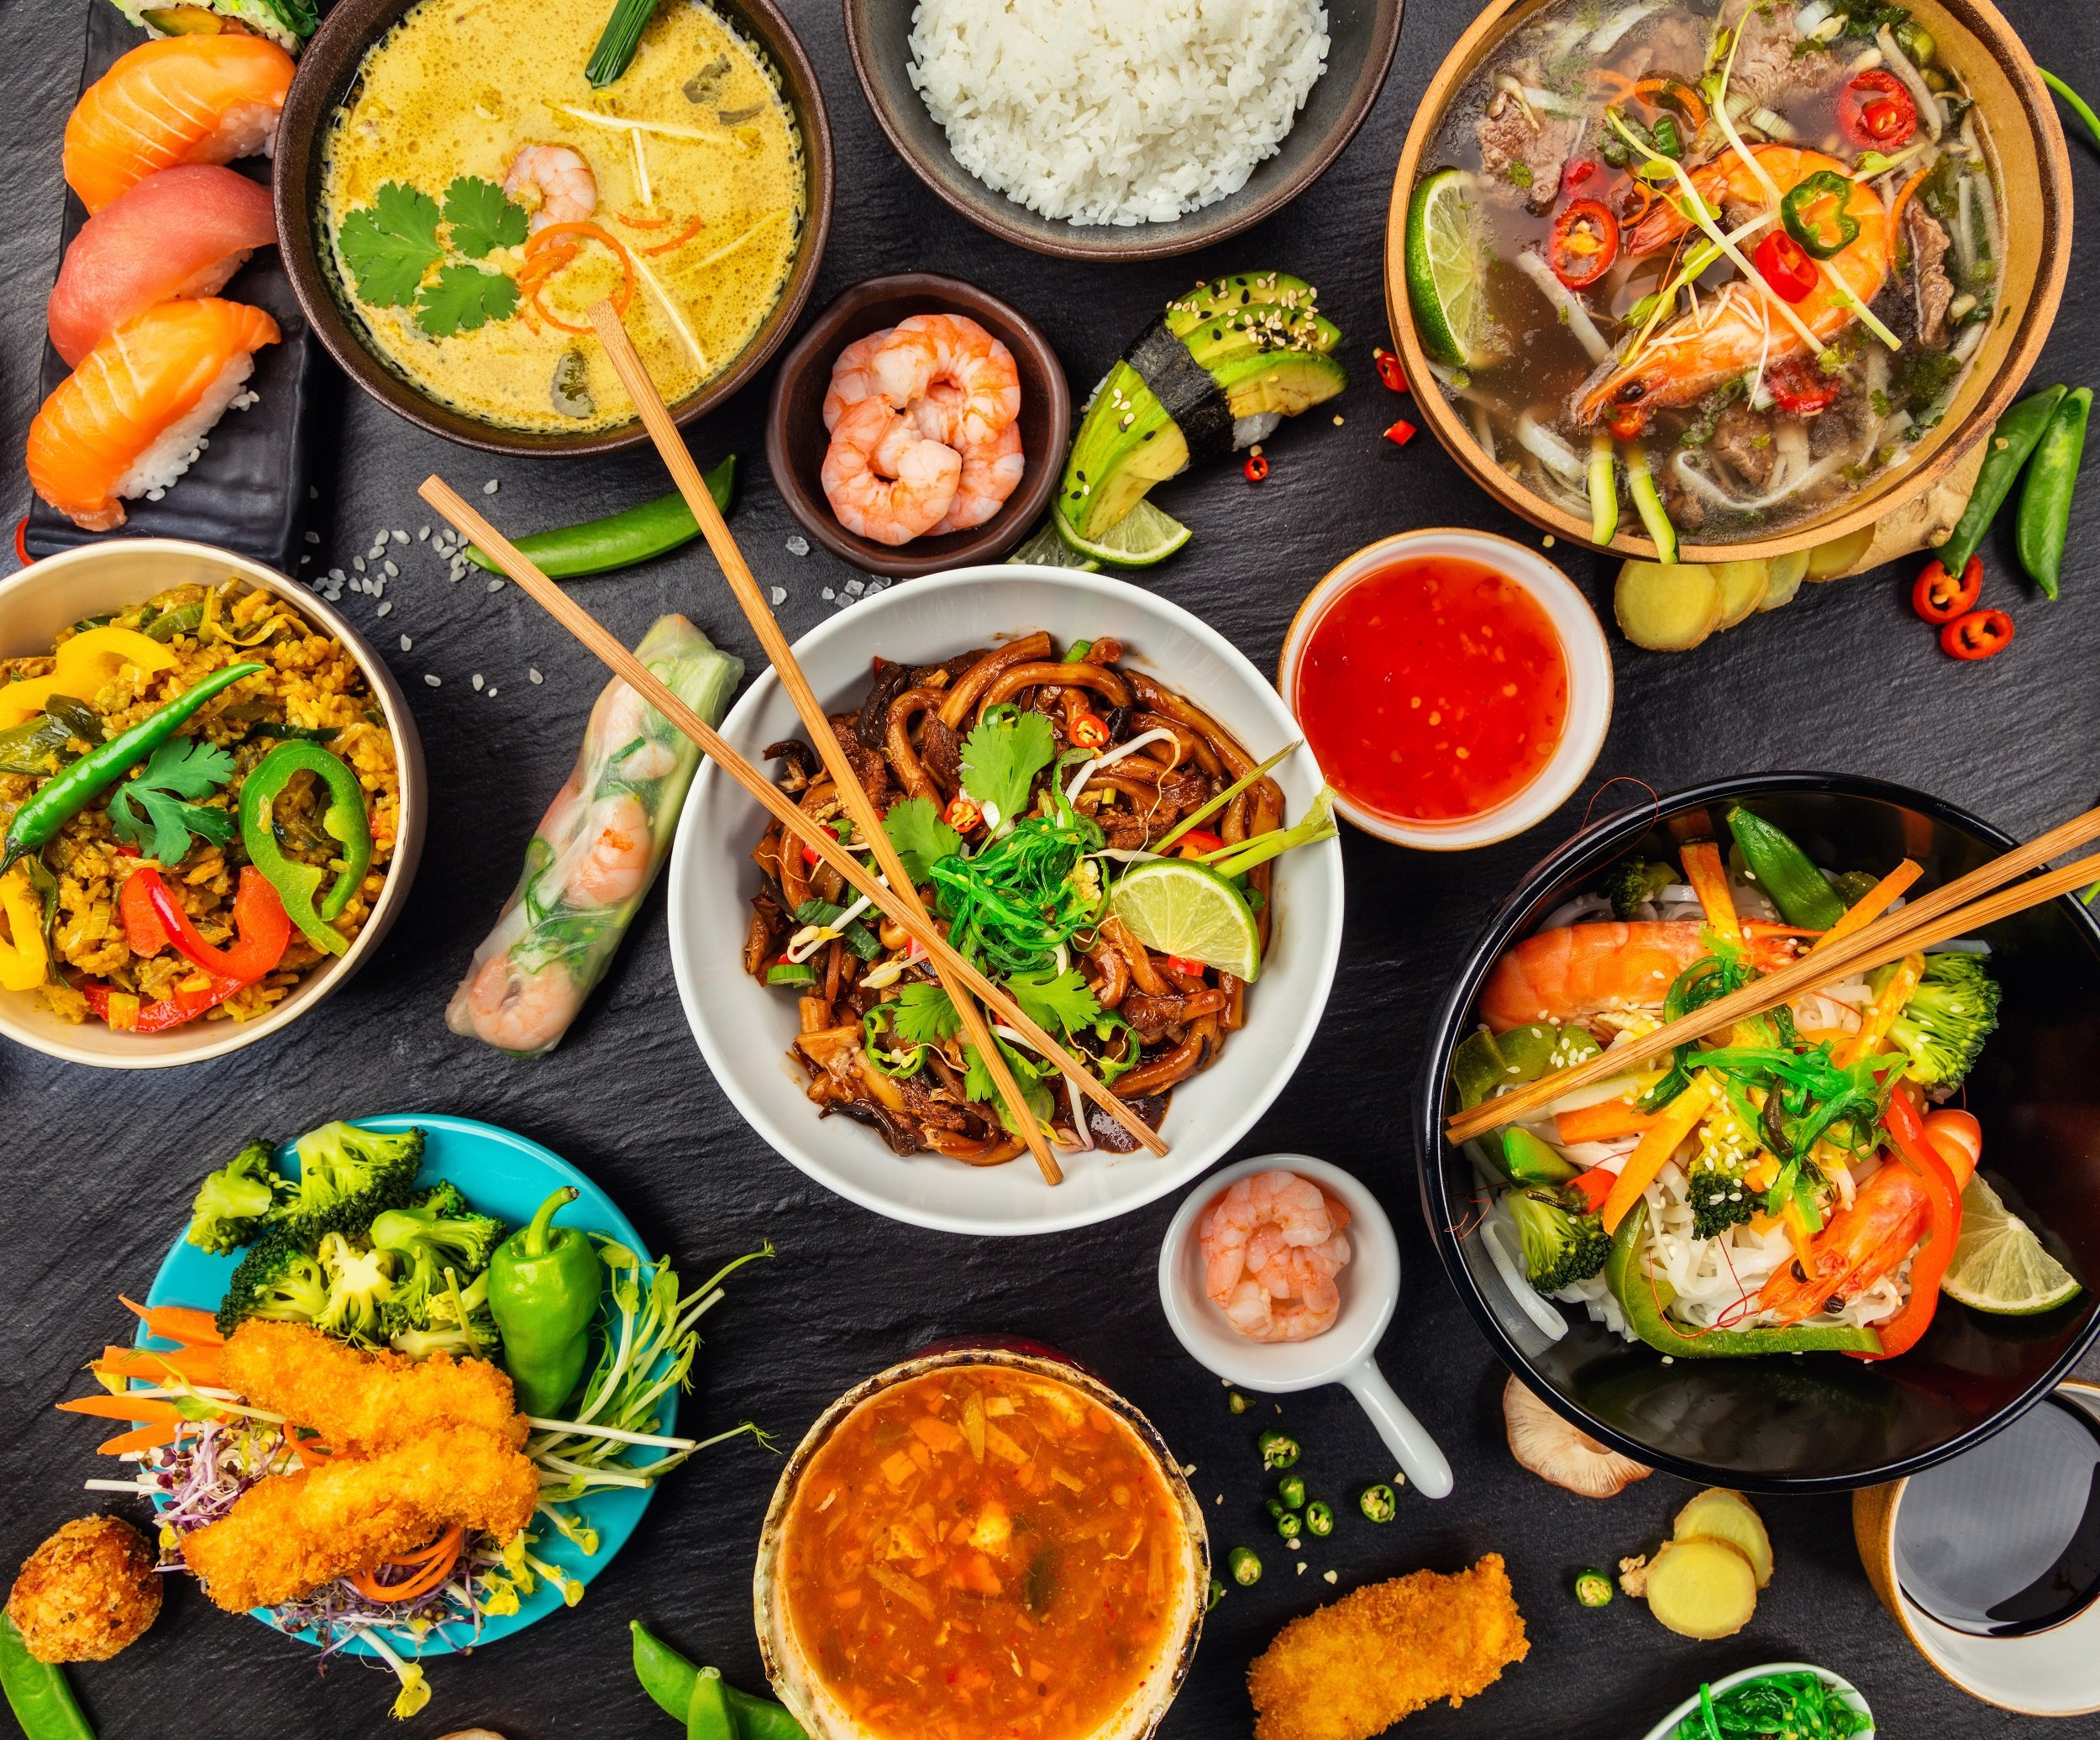 Flavors Of Vietnam - 12 Day Gastronomical Package Tour - Food